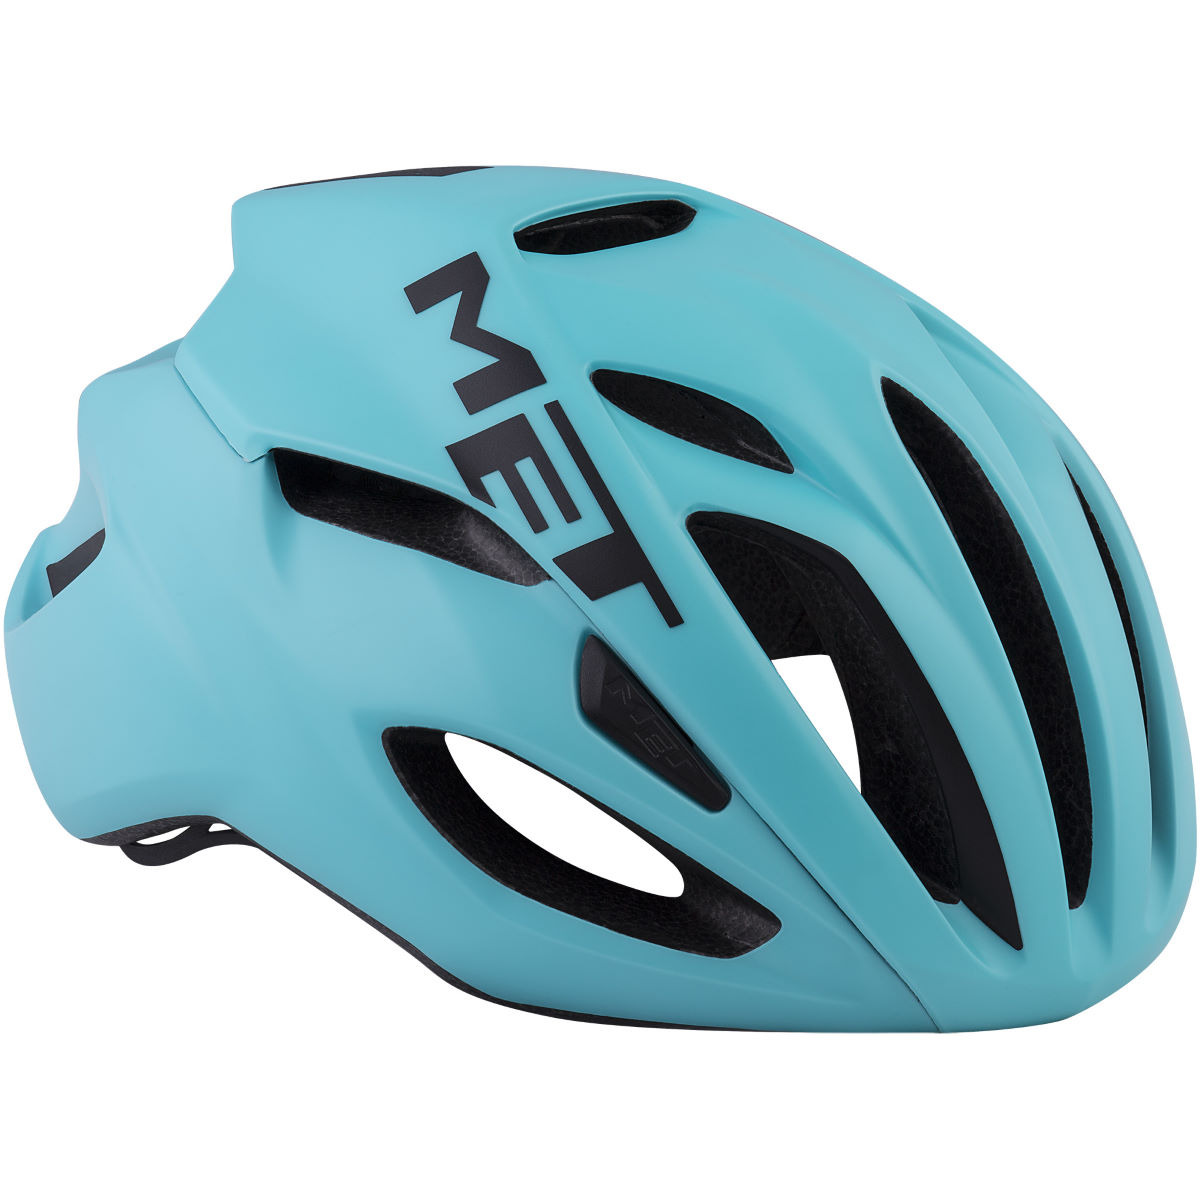 Casque de route MET Team Drops Rivale Aero - Medium Casques de route